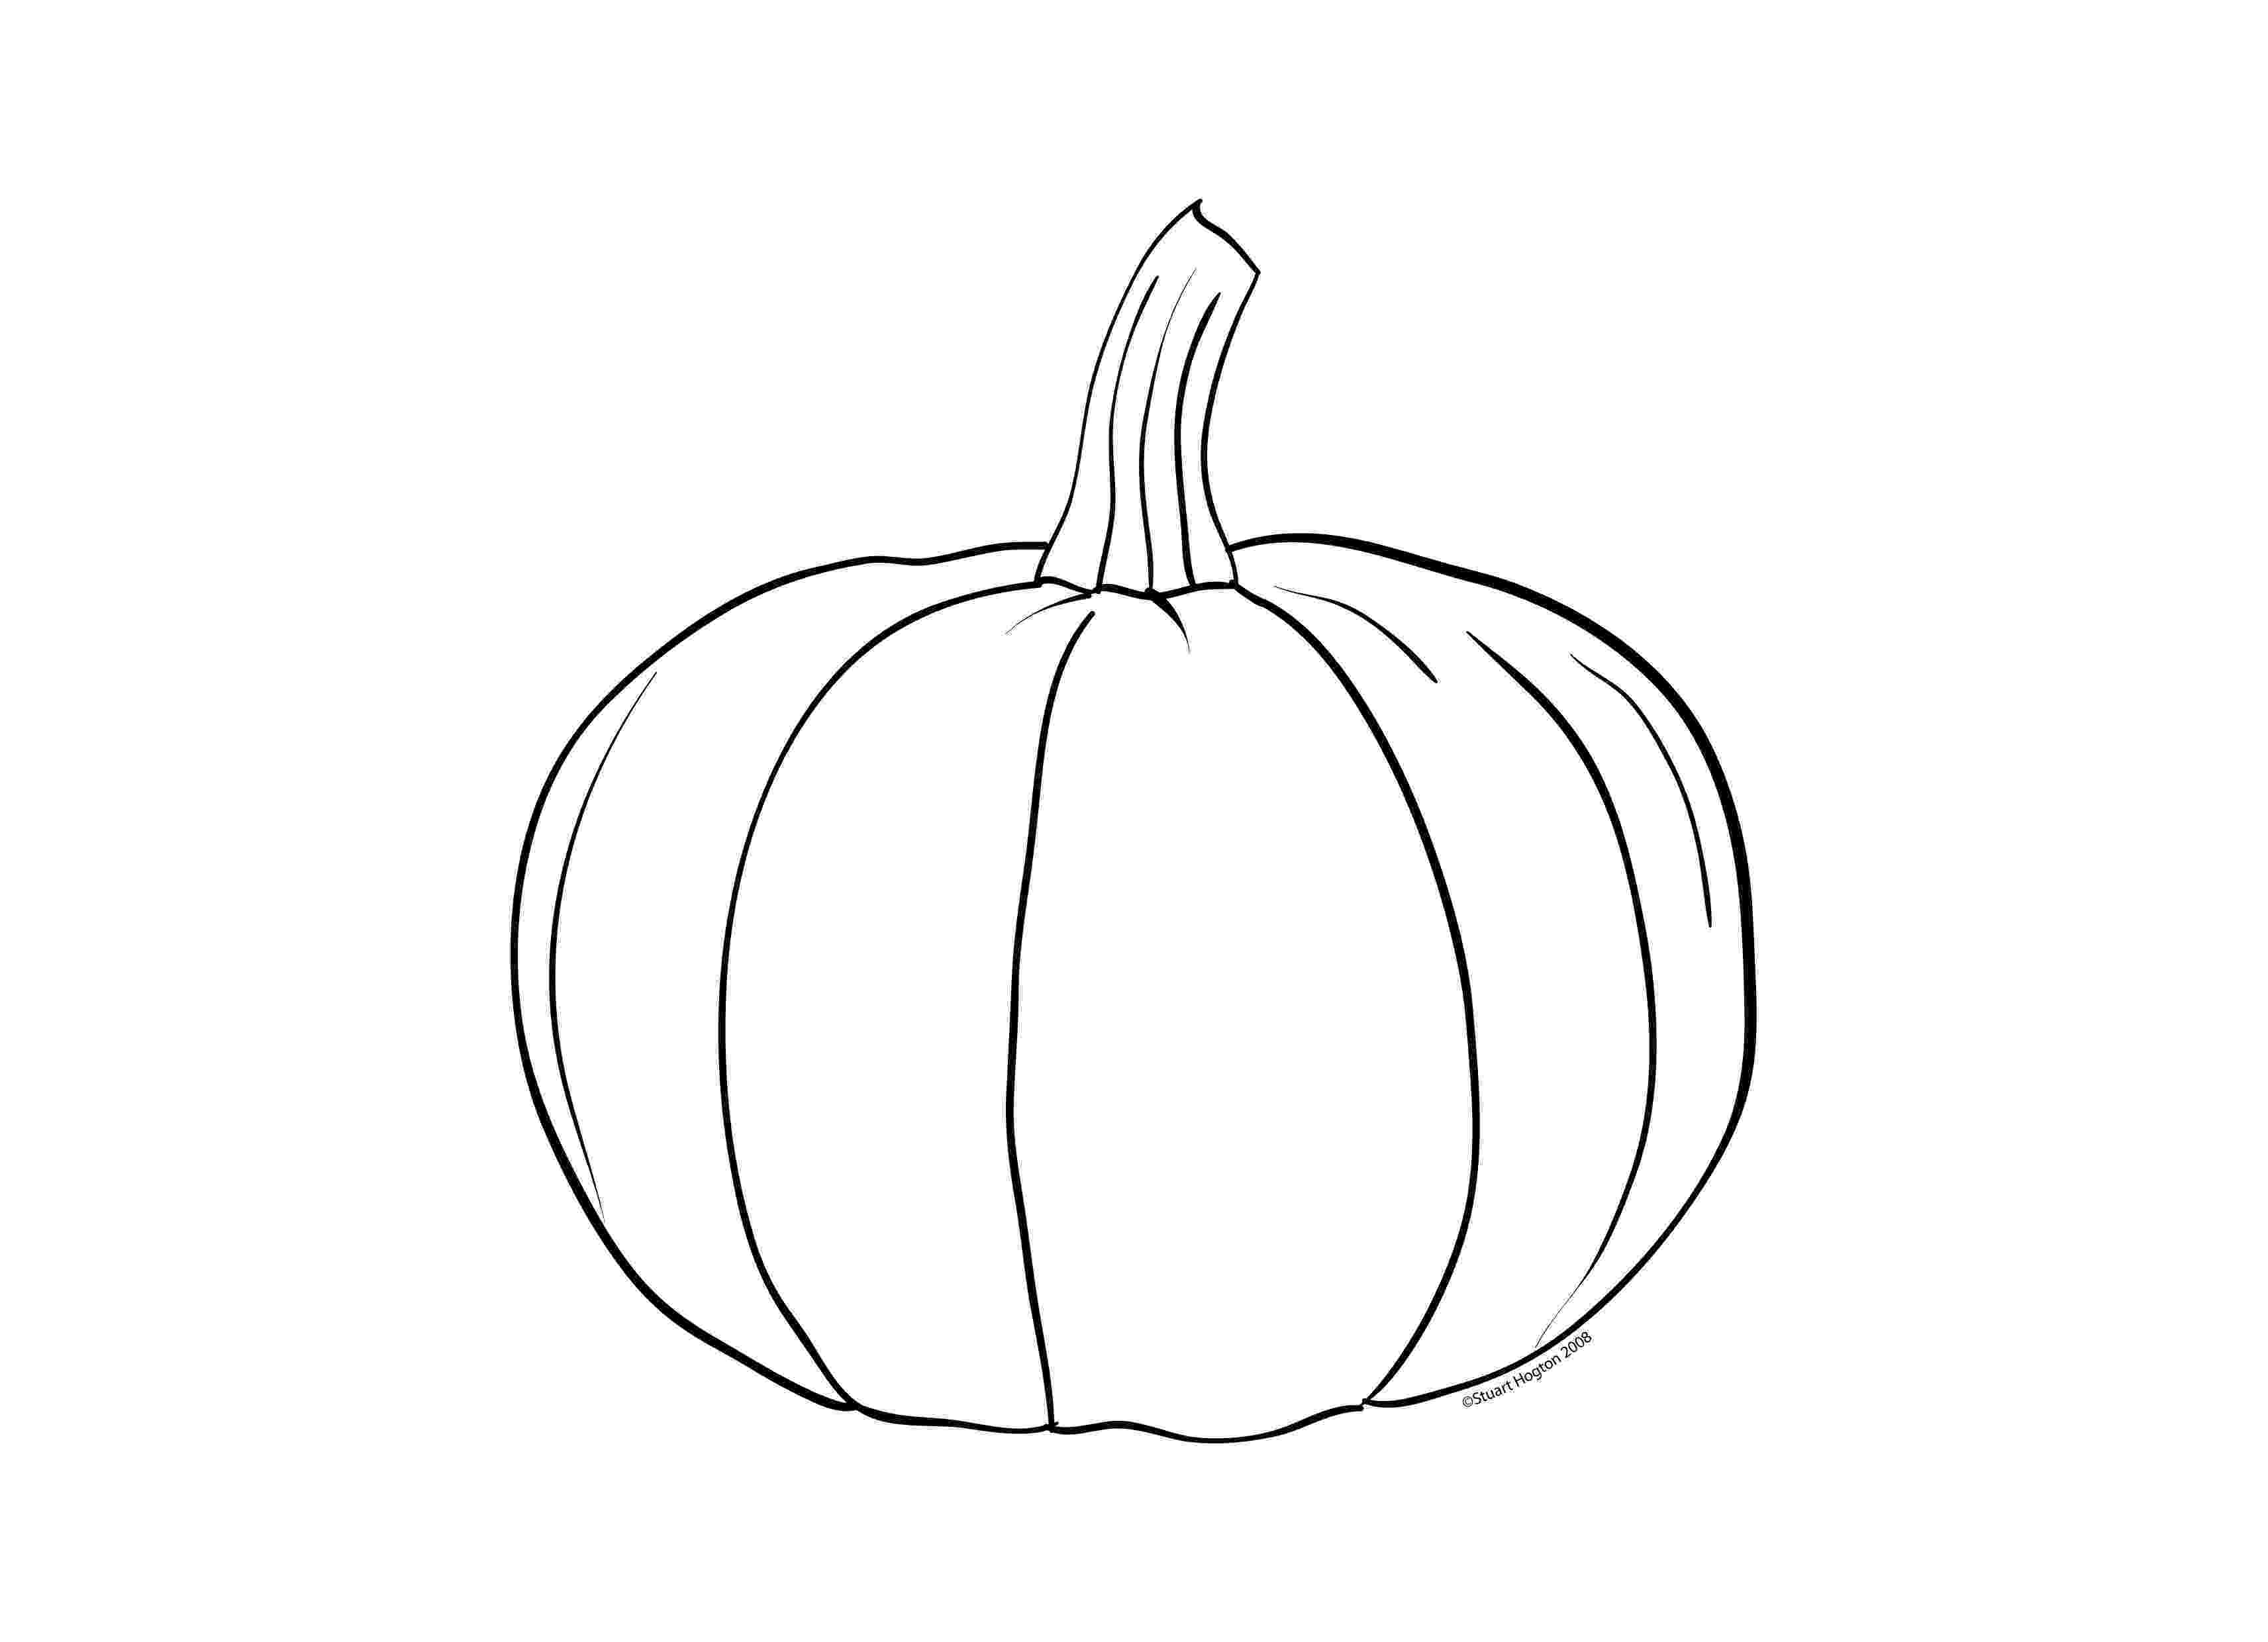 pumpkin to color free printable pumpkin coloring pages for kids color pumpkin to